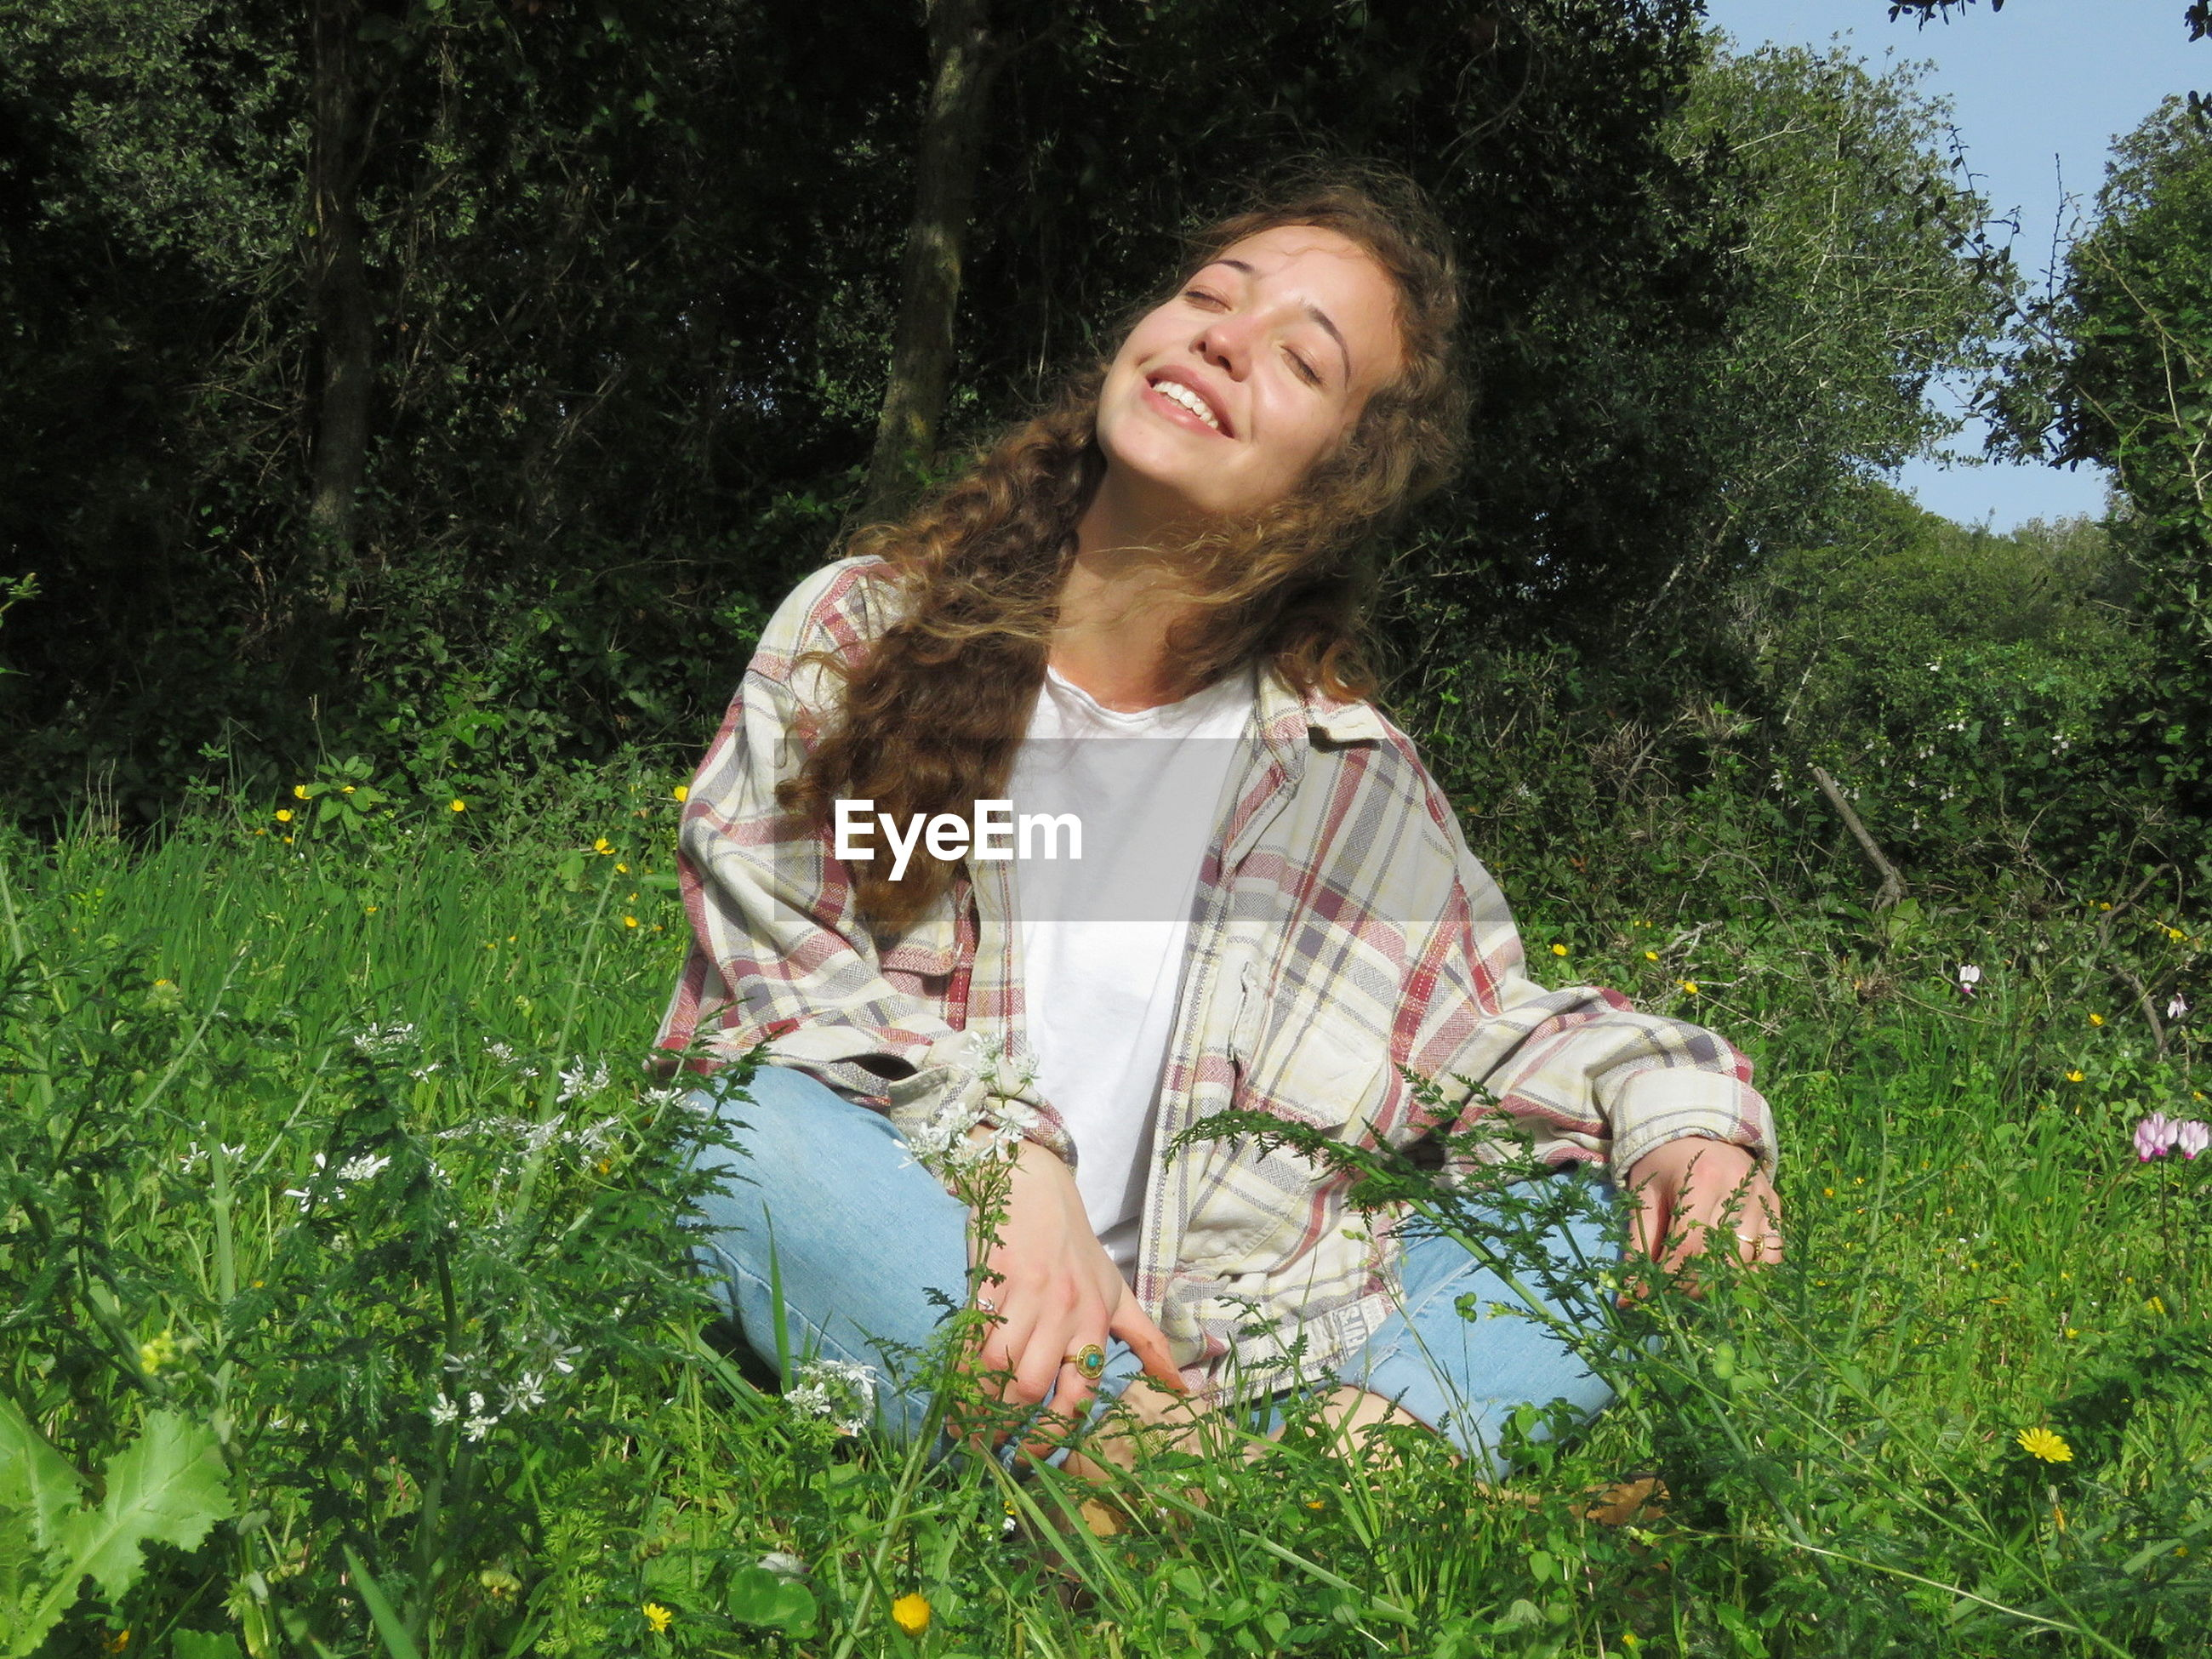 Smiling young woman sitting on grassy field